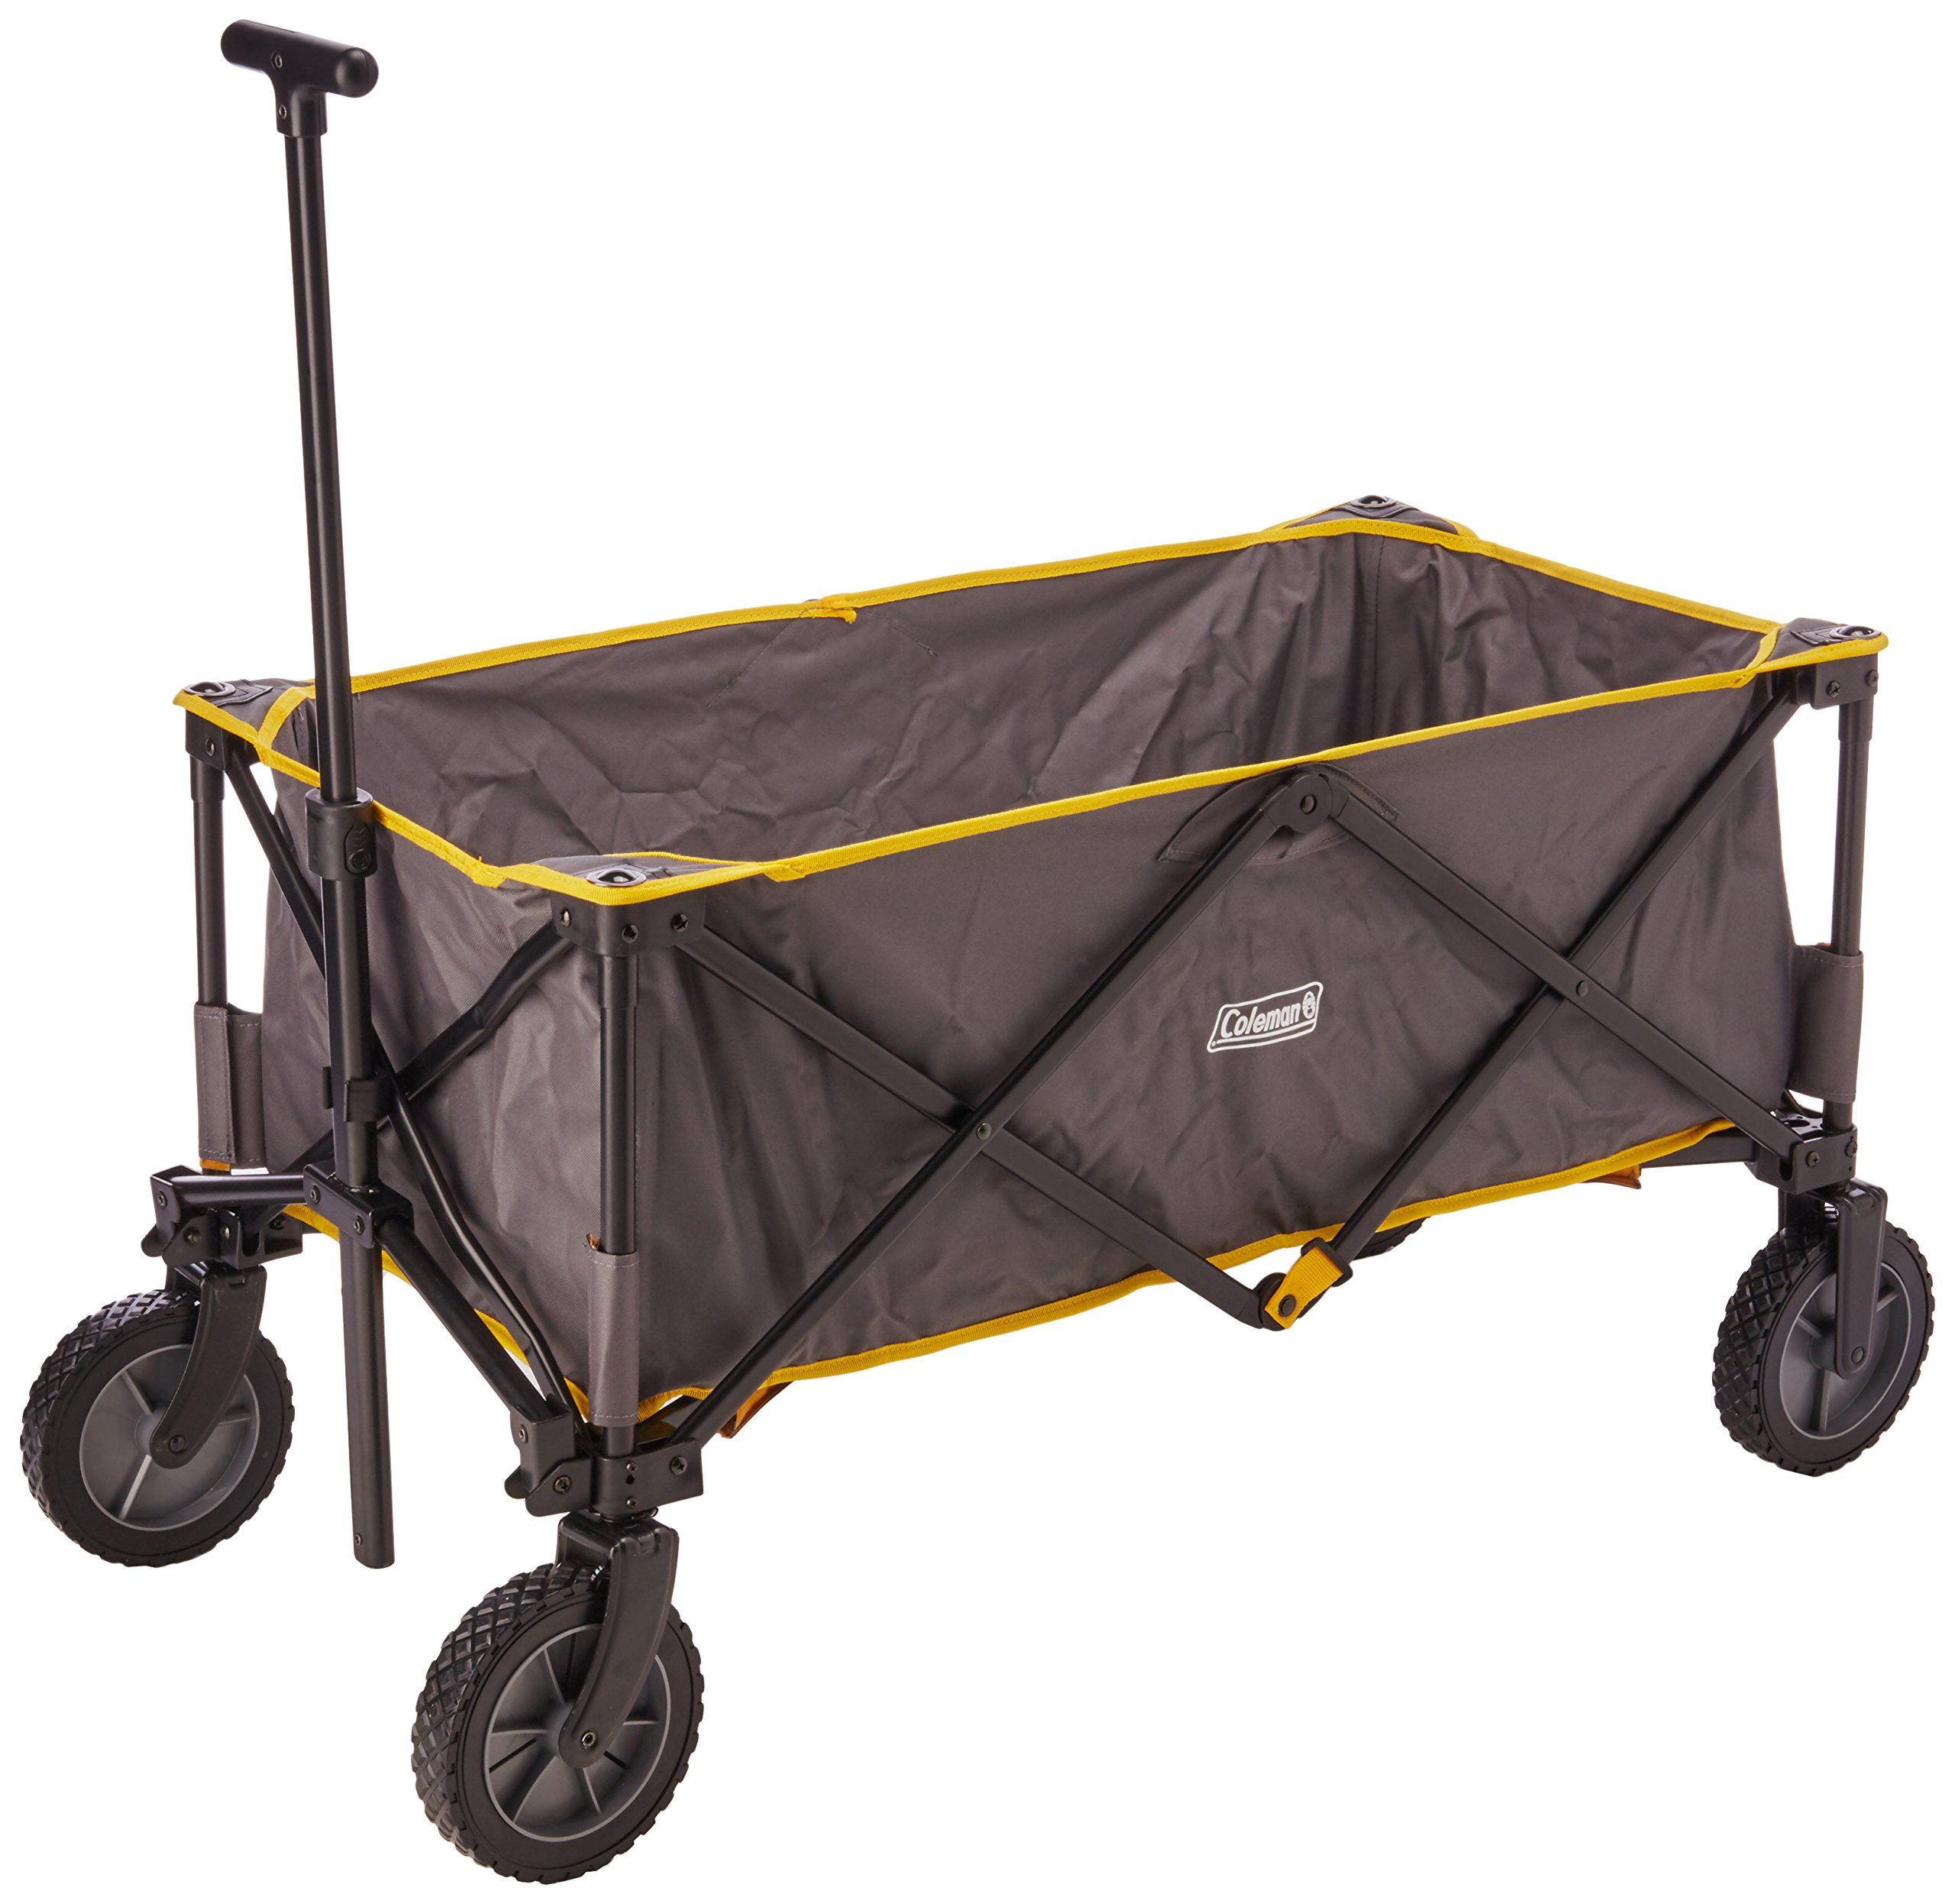 Coleman 2000023362 Camp Wagon Furniture, Gray